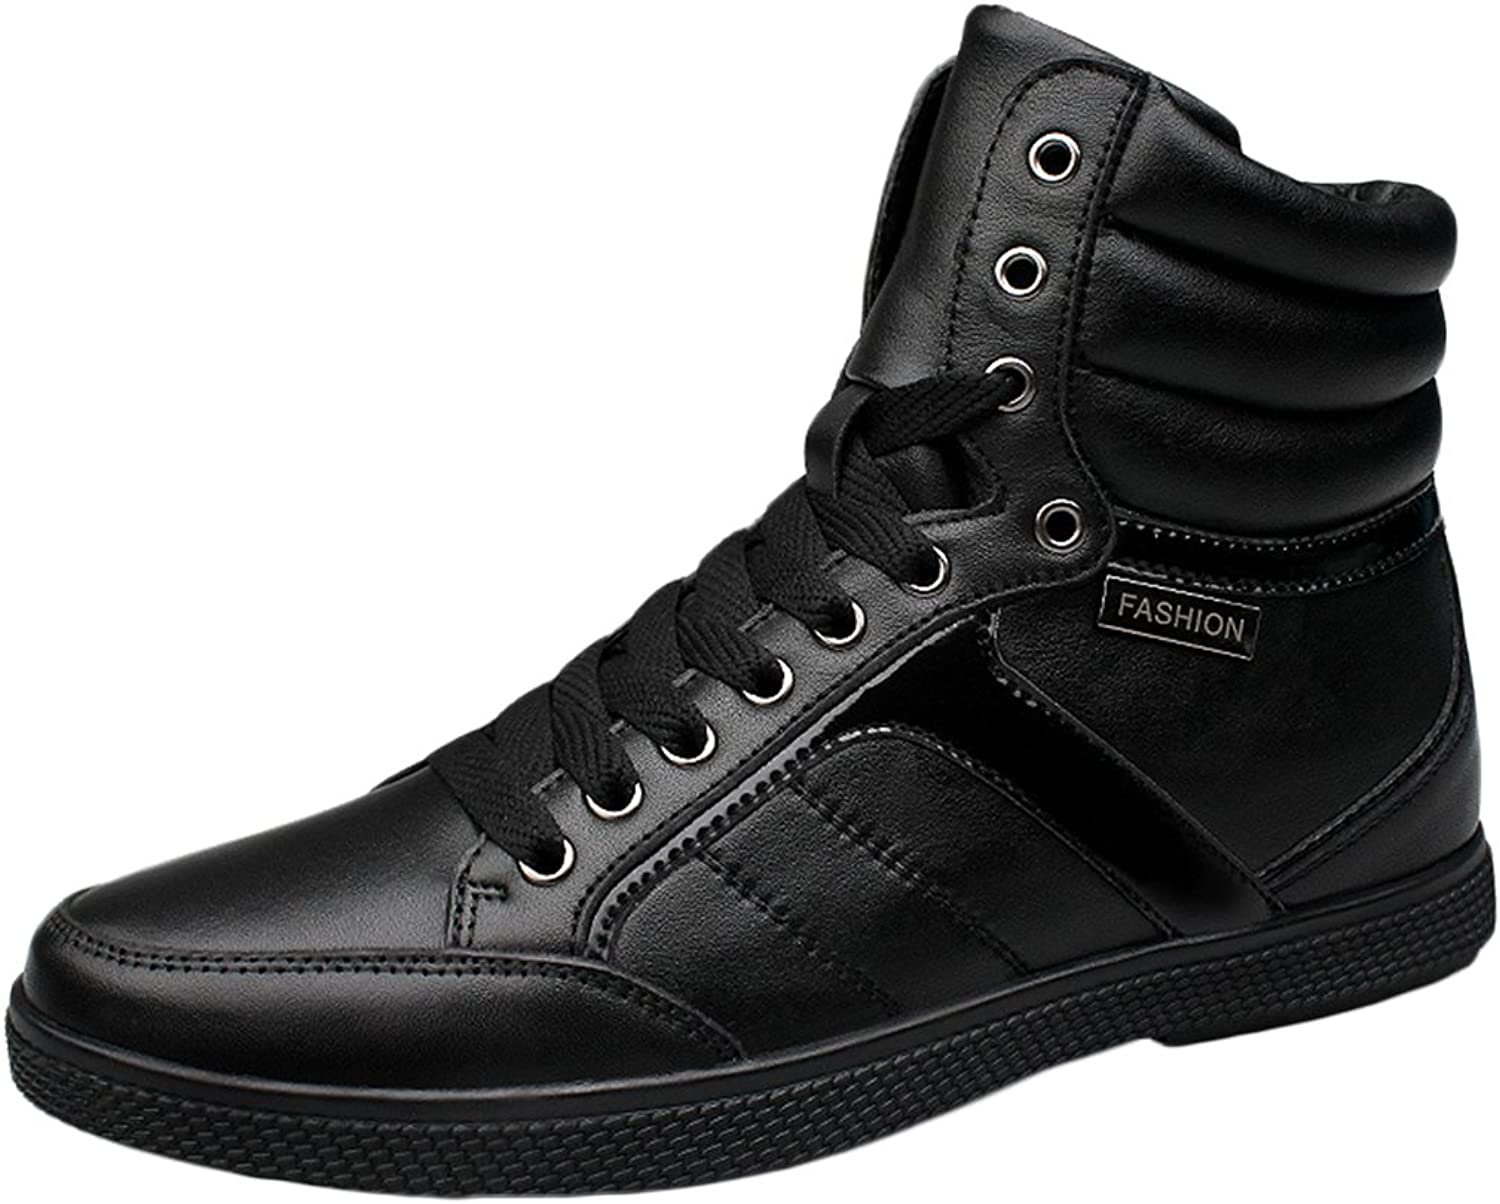 SK Studio Leather High Top Black Sneakers for Men Casual shoes